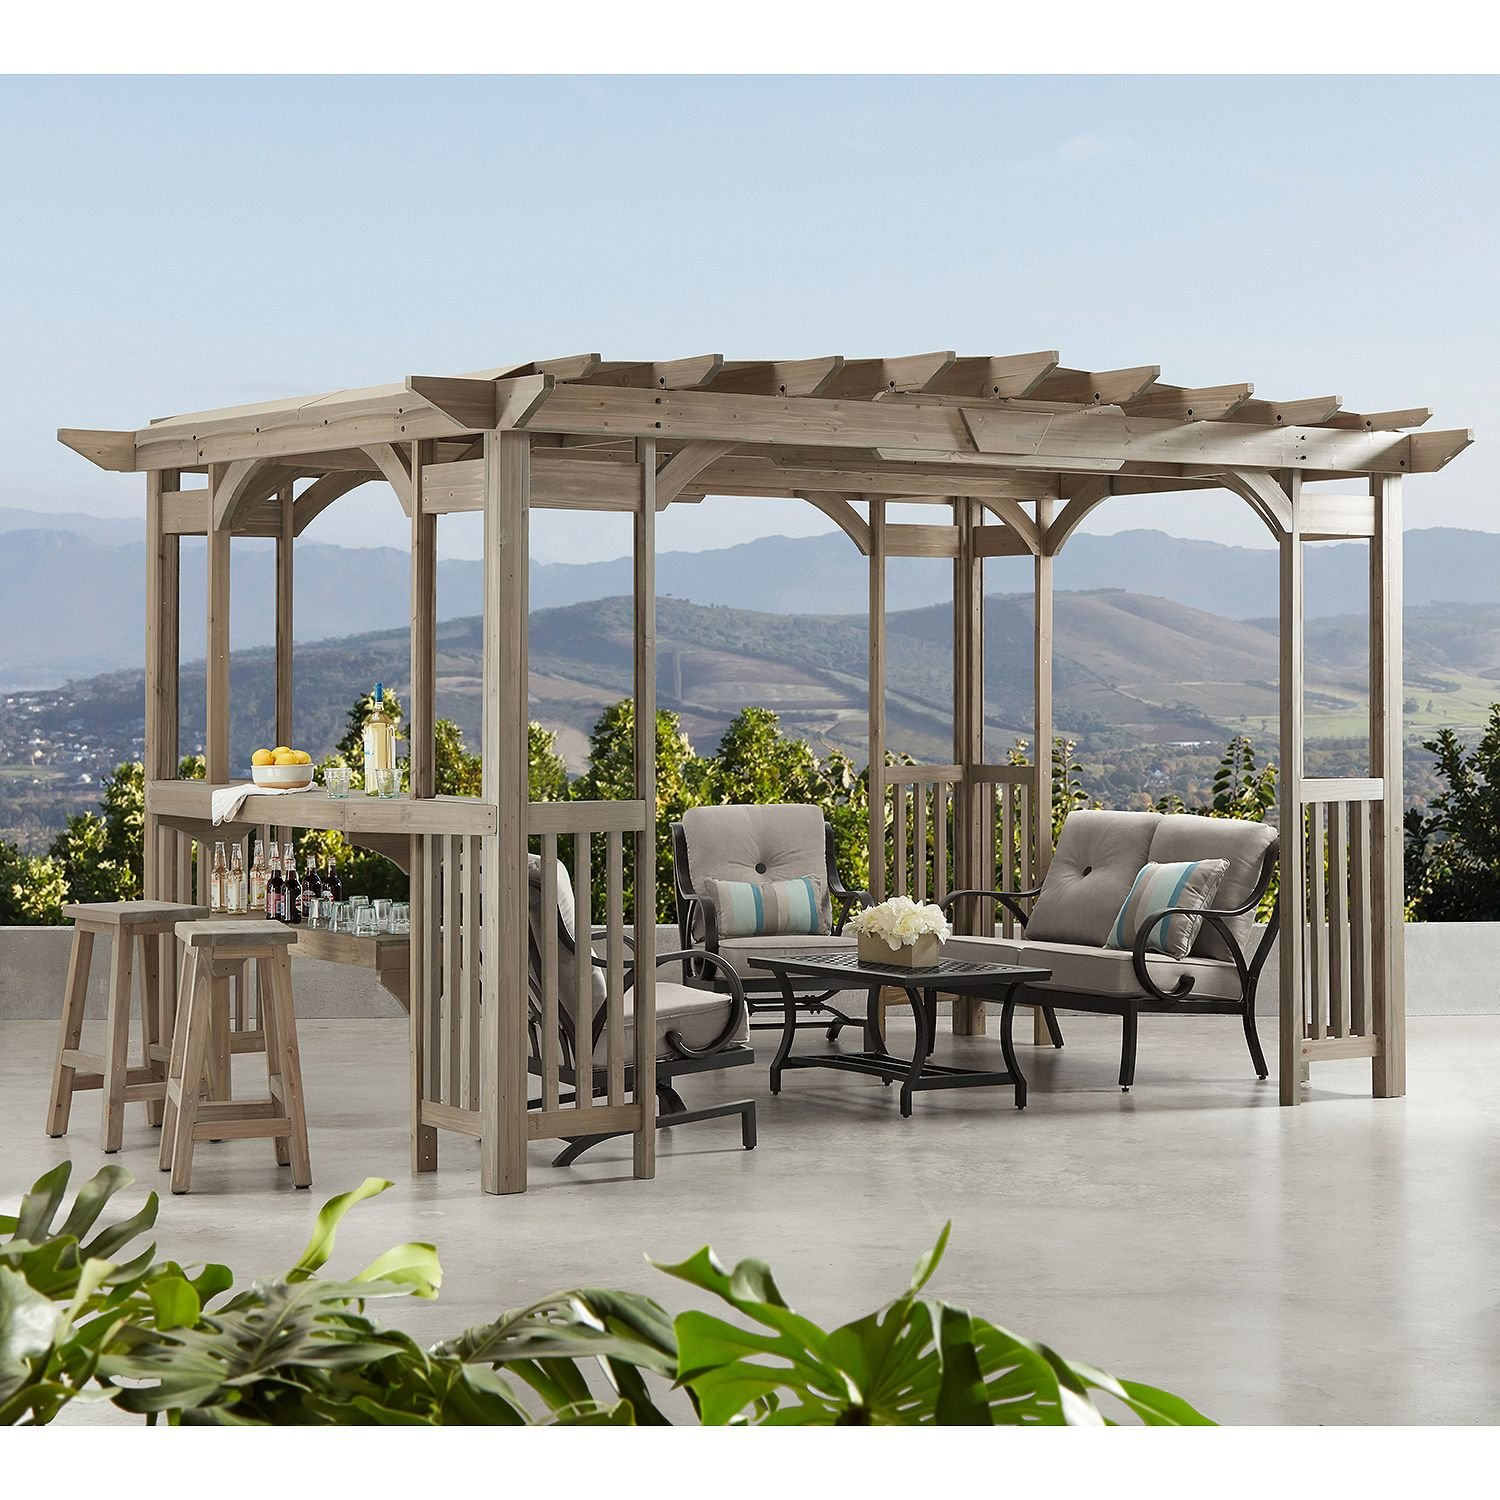 MM Cedar Pergola Gazebo with Bar Counter and Sunshade in Timber Gray Stain 12 x 8